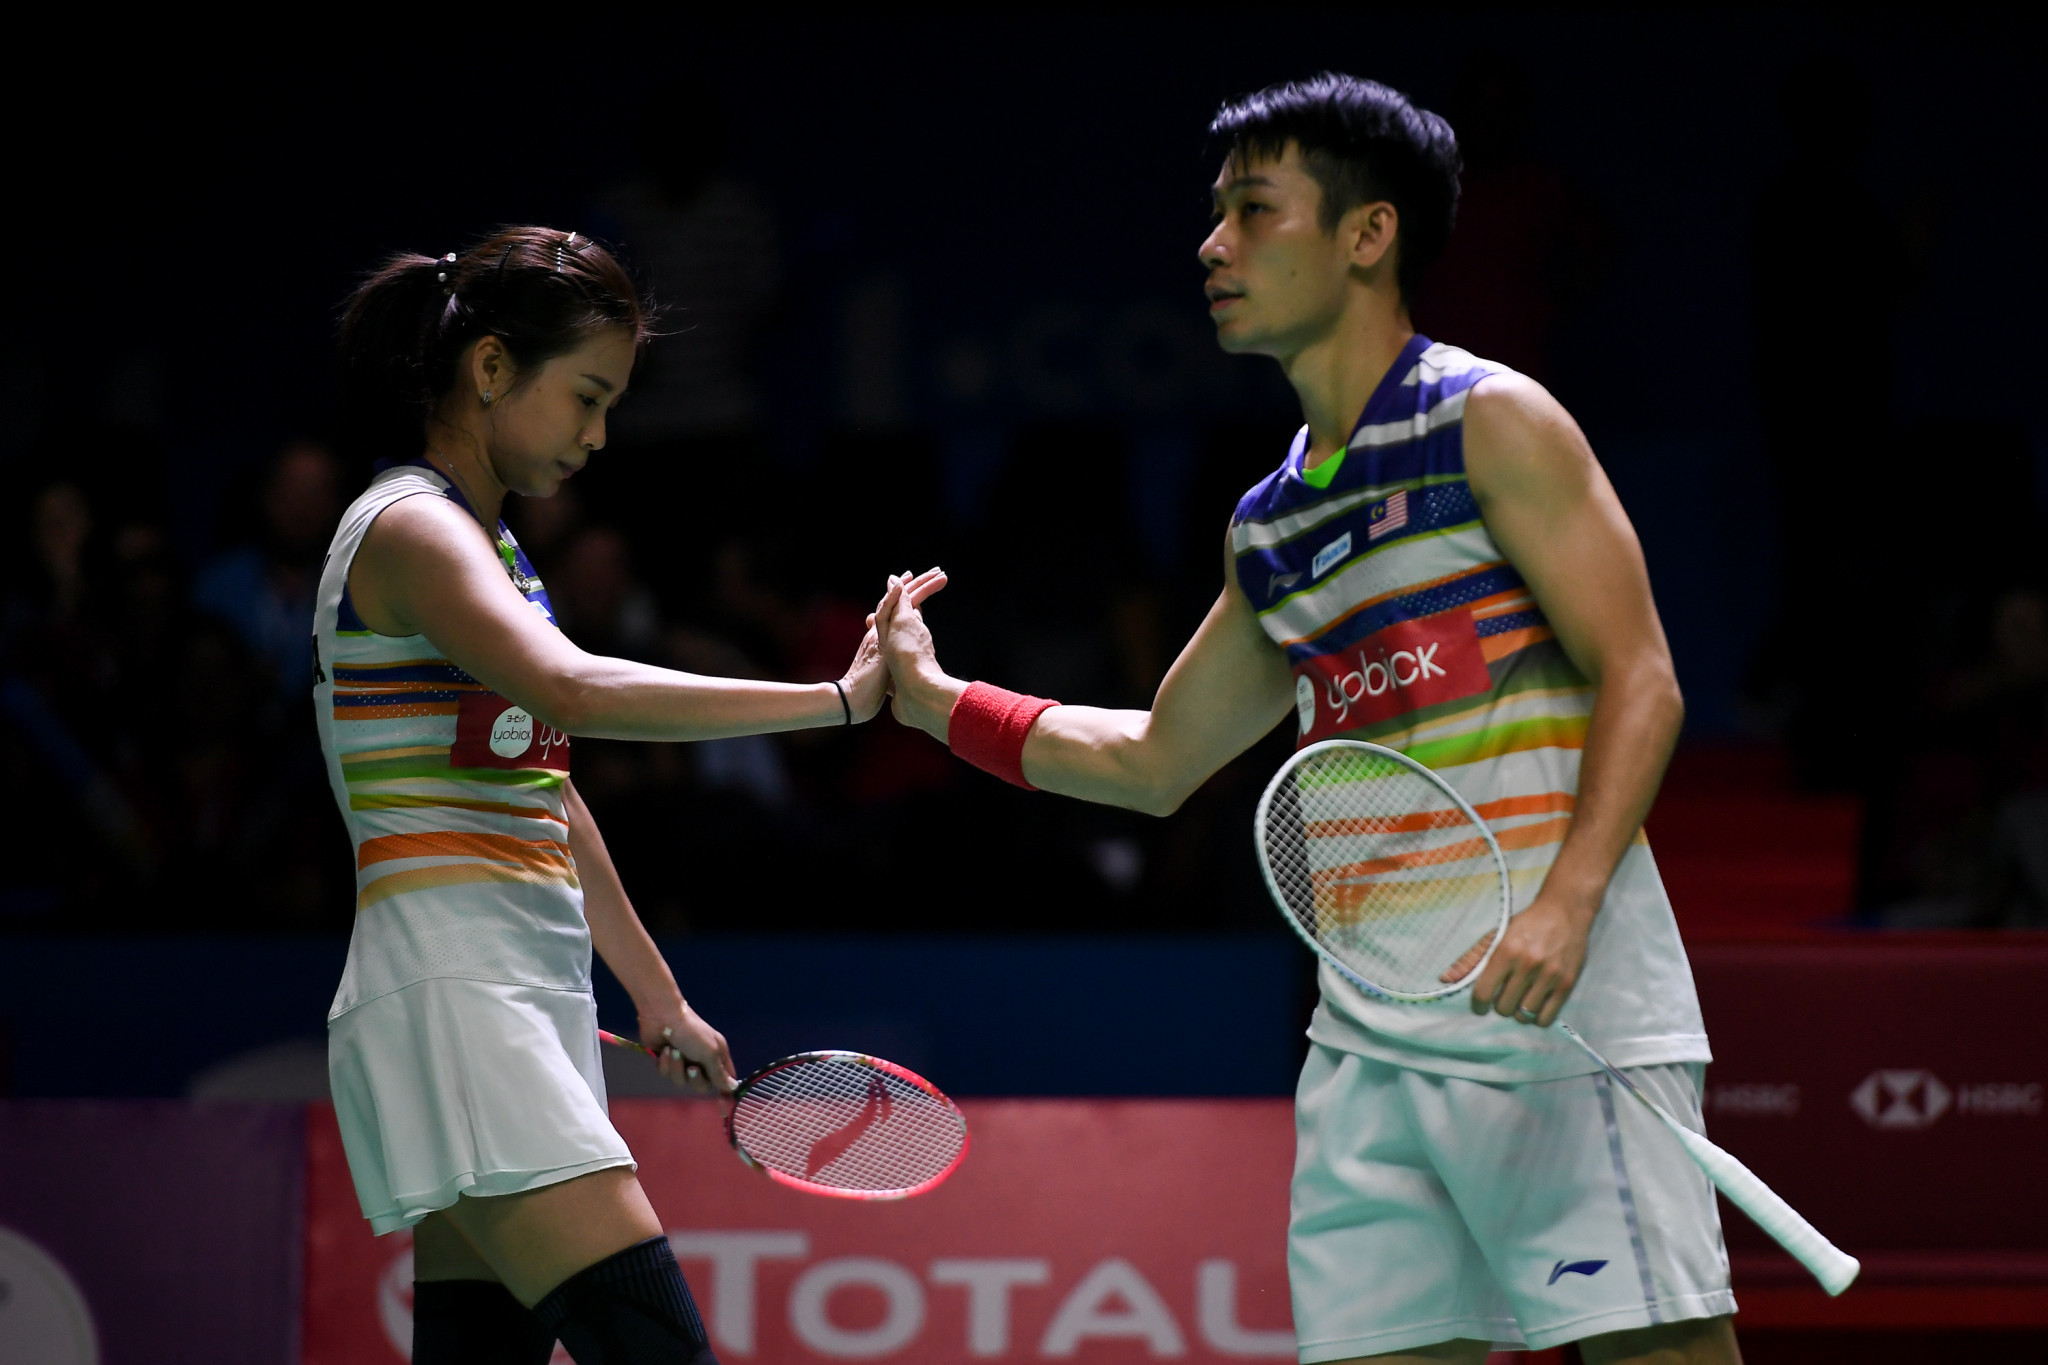 The mixed doubles first round is scheduled to take place tomorrow at the BWF Yonex Swiss Open, with Chan Peng Soon and Goh Liu Ying of Malaysia the top seeds ©Getty Images